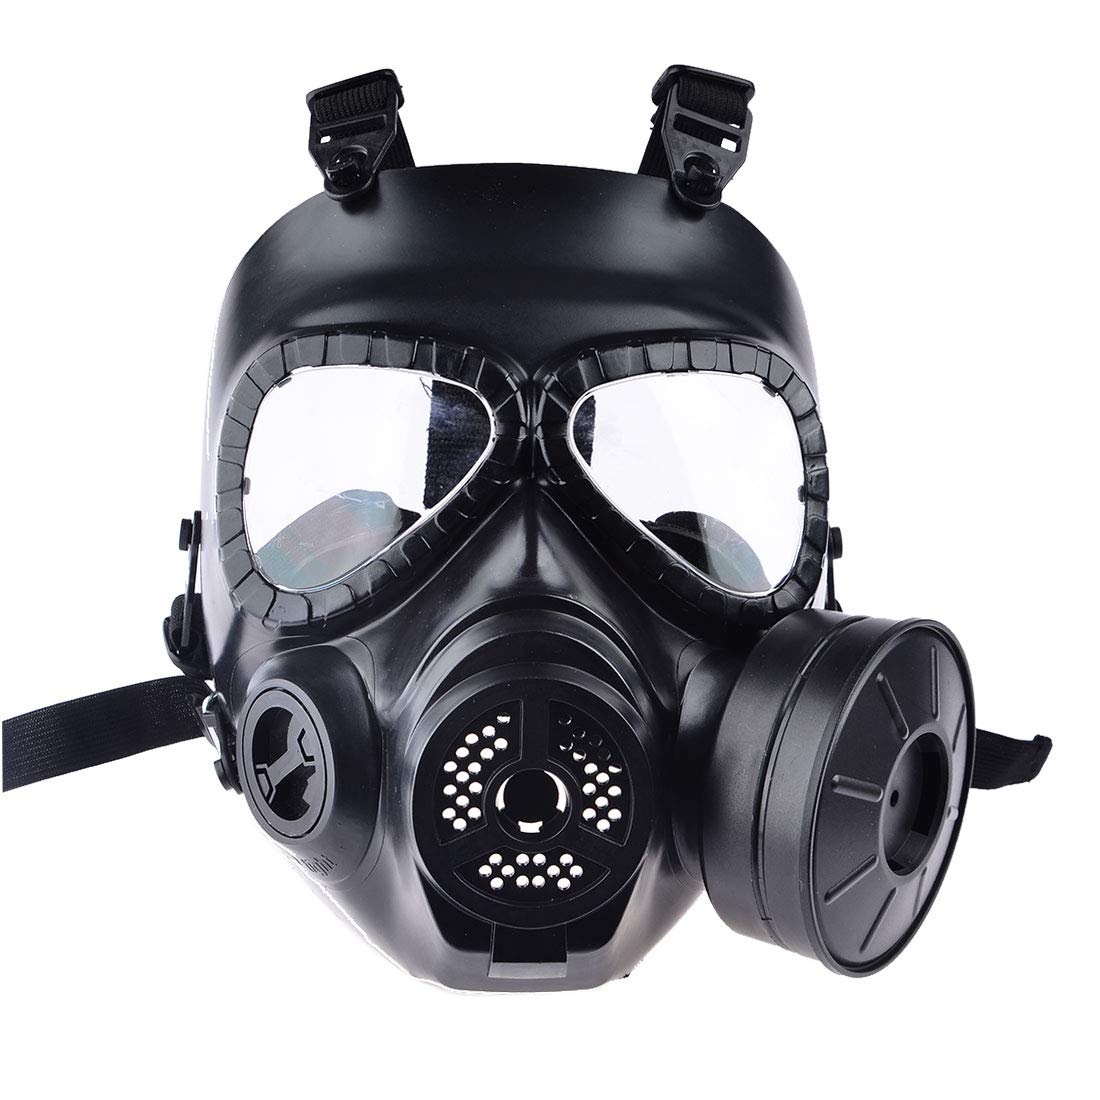 PeleusTech® WST Head Mask Full Face Single Canister Electric Ventilative Biochemical Gas Mask Toys Masks for Children, Cosplay,Halloween and Party - No Actual Anti-Virus Function